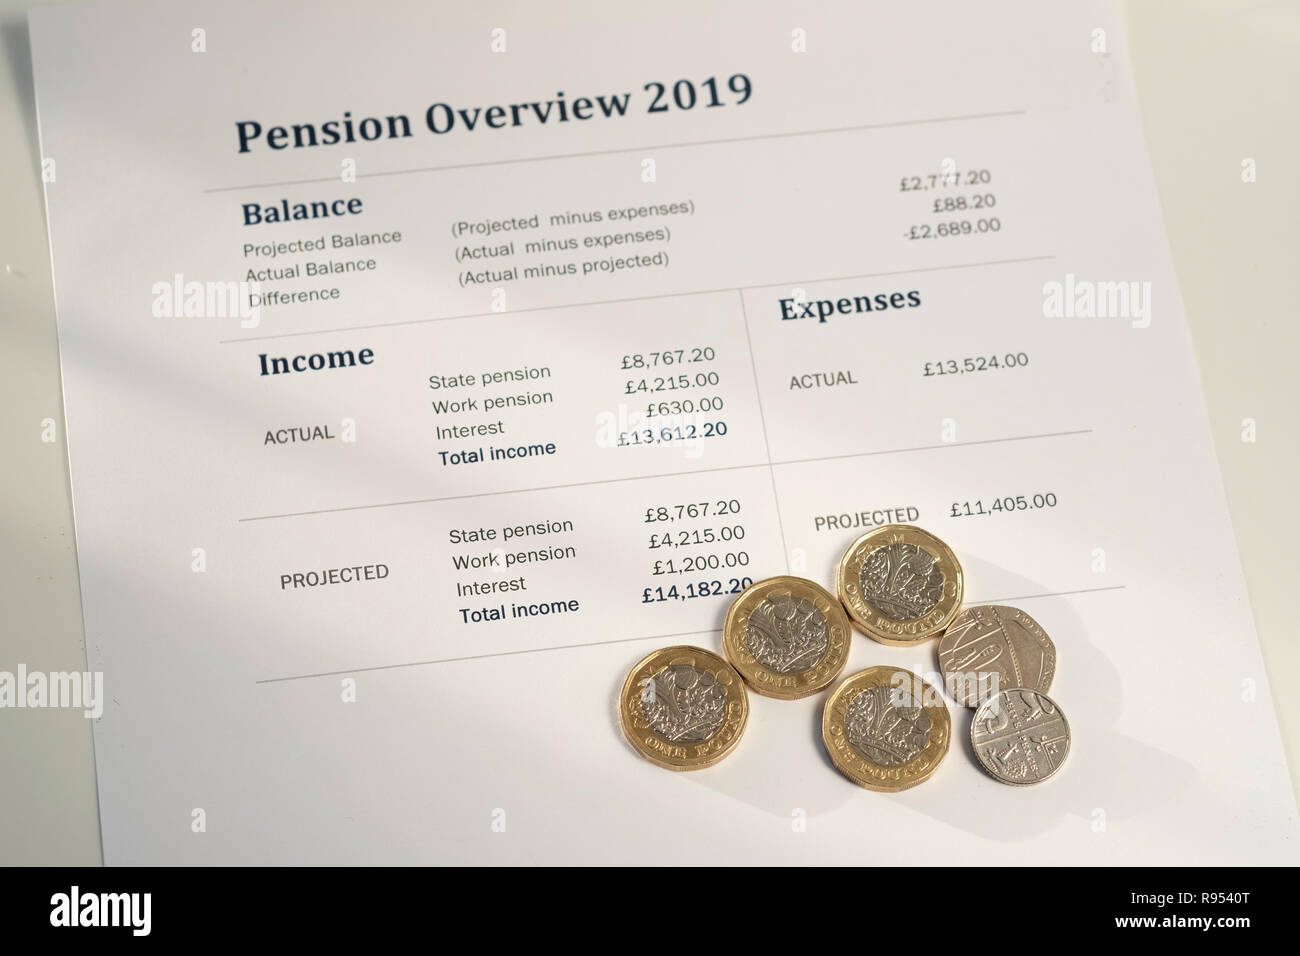 UK state pension increase of 4.25 per week from April 2019 - Stock Image